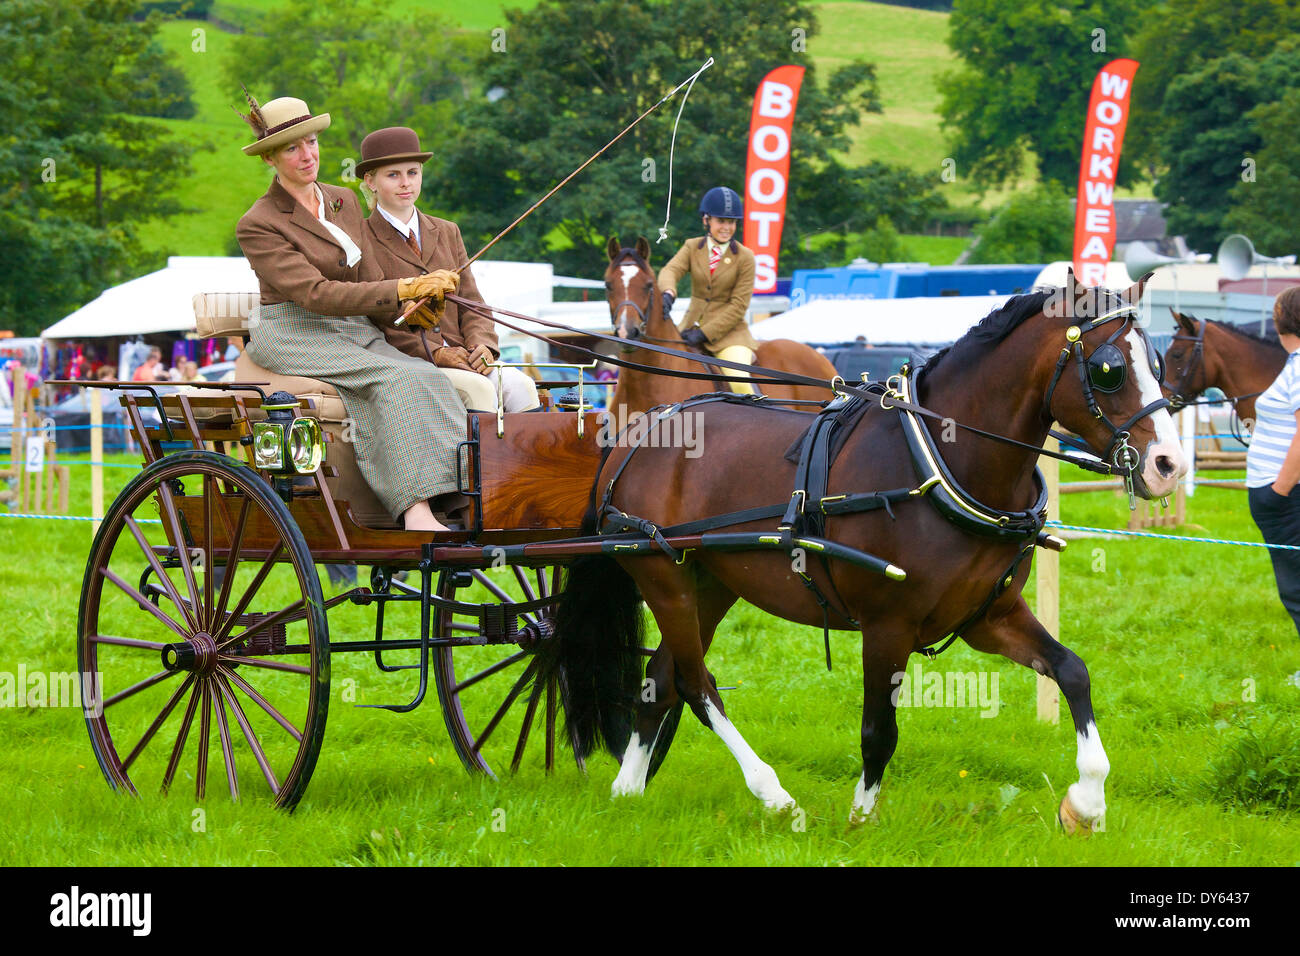 Two women carriage driving at Hawkshead Show, Hawkshead, Cumbria, England, United Kingdom - Stock Image